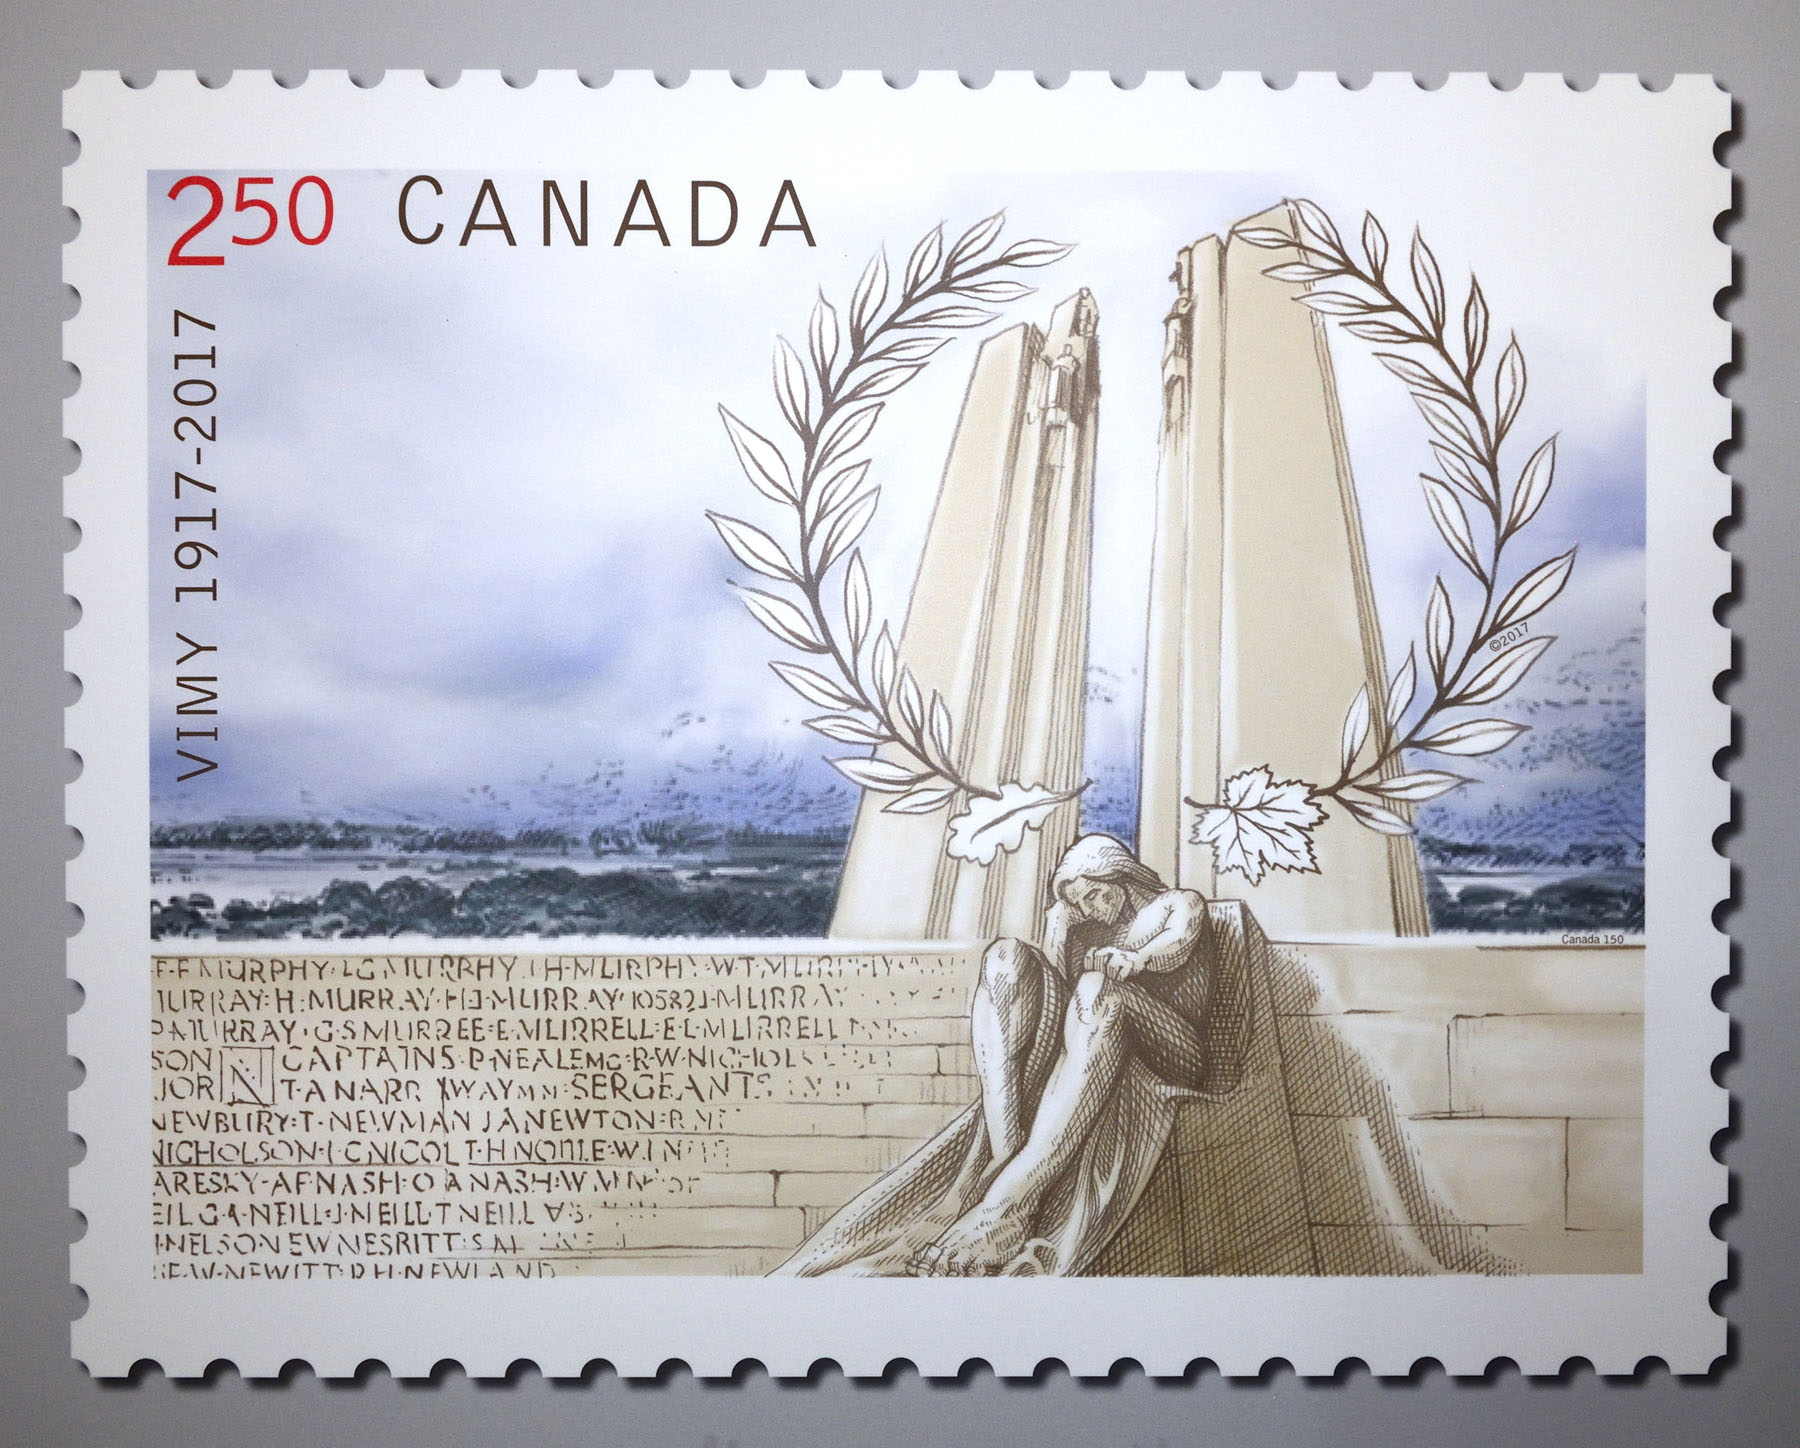 The Canadian stamp was designed by Susan Scott of Montréal and features the two towering pylons of Walter Allward's Vimy monument, which represent France and Canada. The sheer scale of the monument reflects Canada's important contribution to Allied victory in the First World War. In the foreground of the stamp is a figure of a grieving man, one of the monument's statues, symbolizing loss and grief. The ridge behind the monument on the stamp recalls the site of the battle itself.